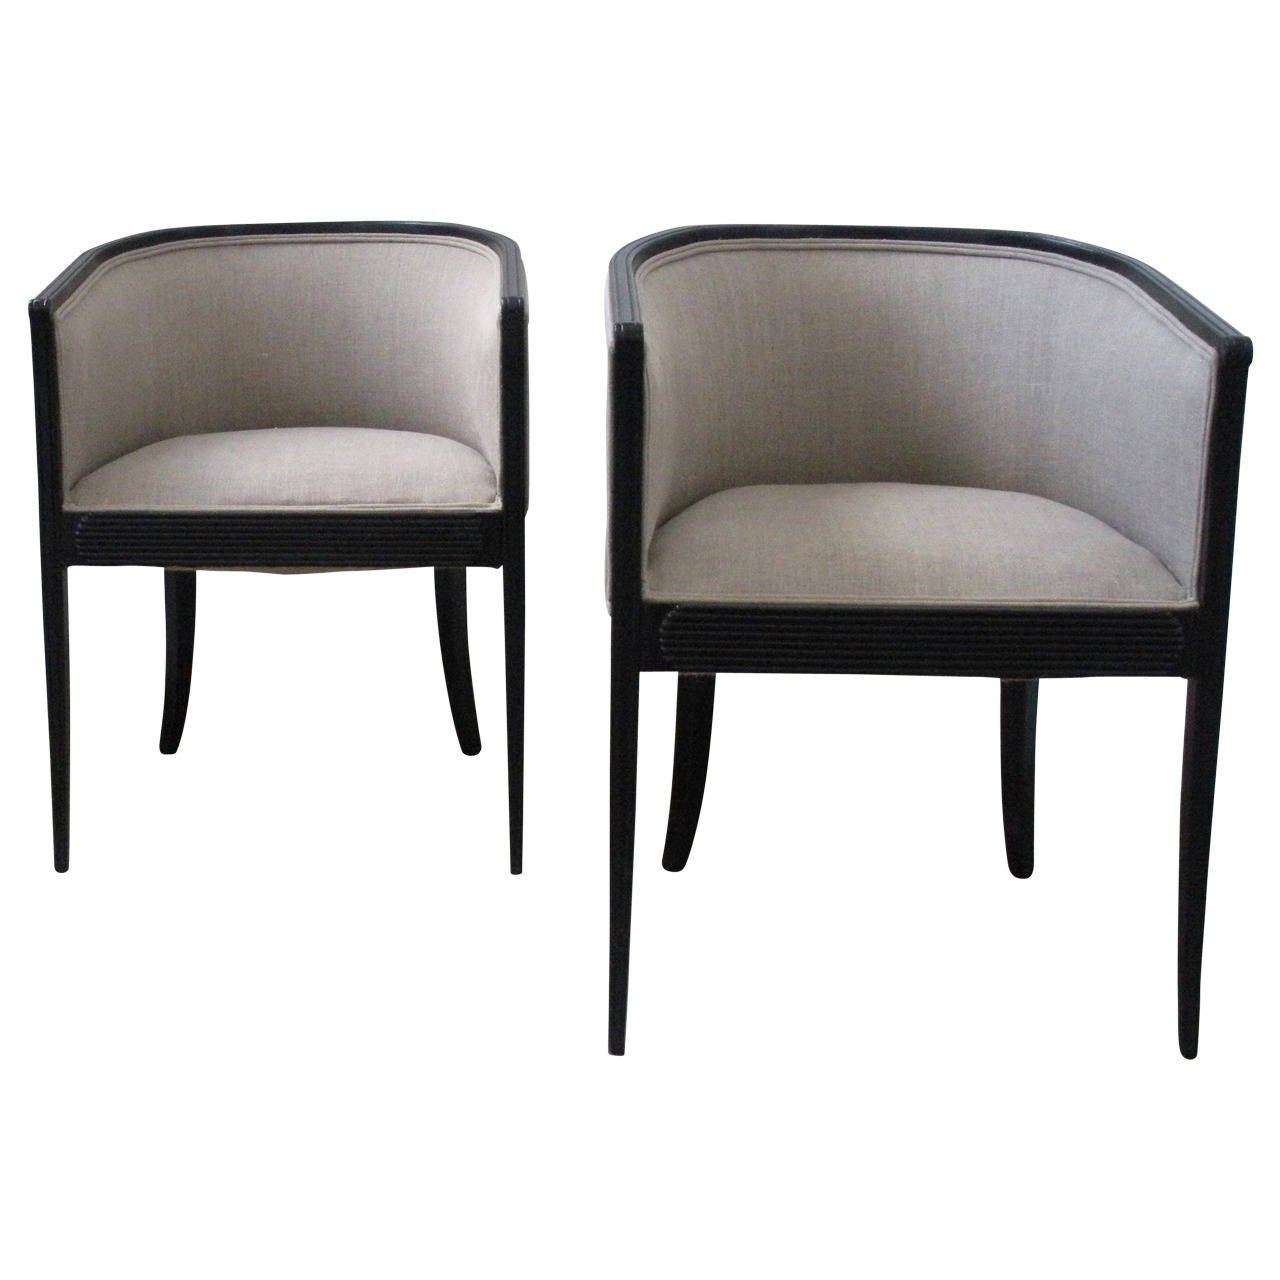 Pair Of French Art Deco Tub Chairs At 1stdibs